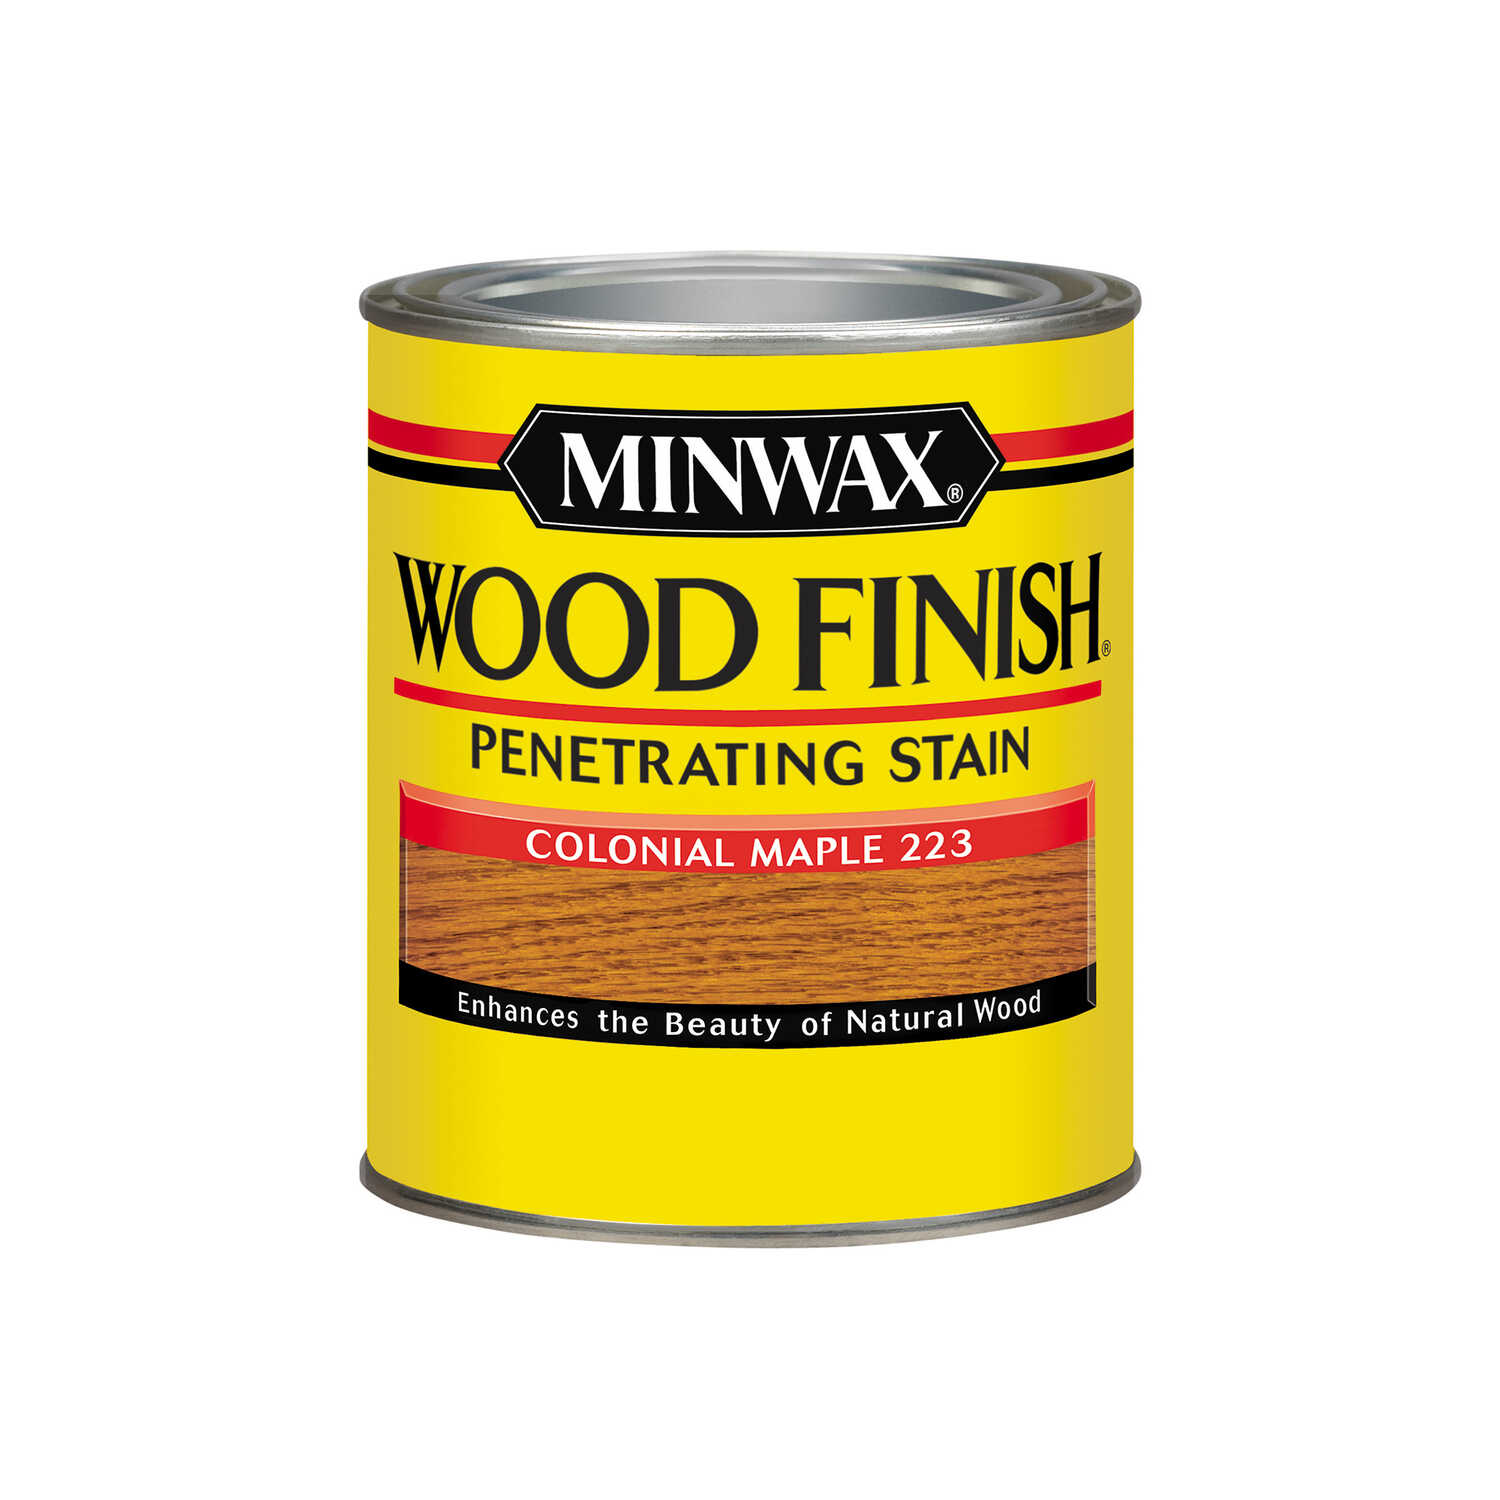 Minwax  Wood Finish  Semi-Transparent  Colonial Maple  Oil-Based  Stain  1 qt.